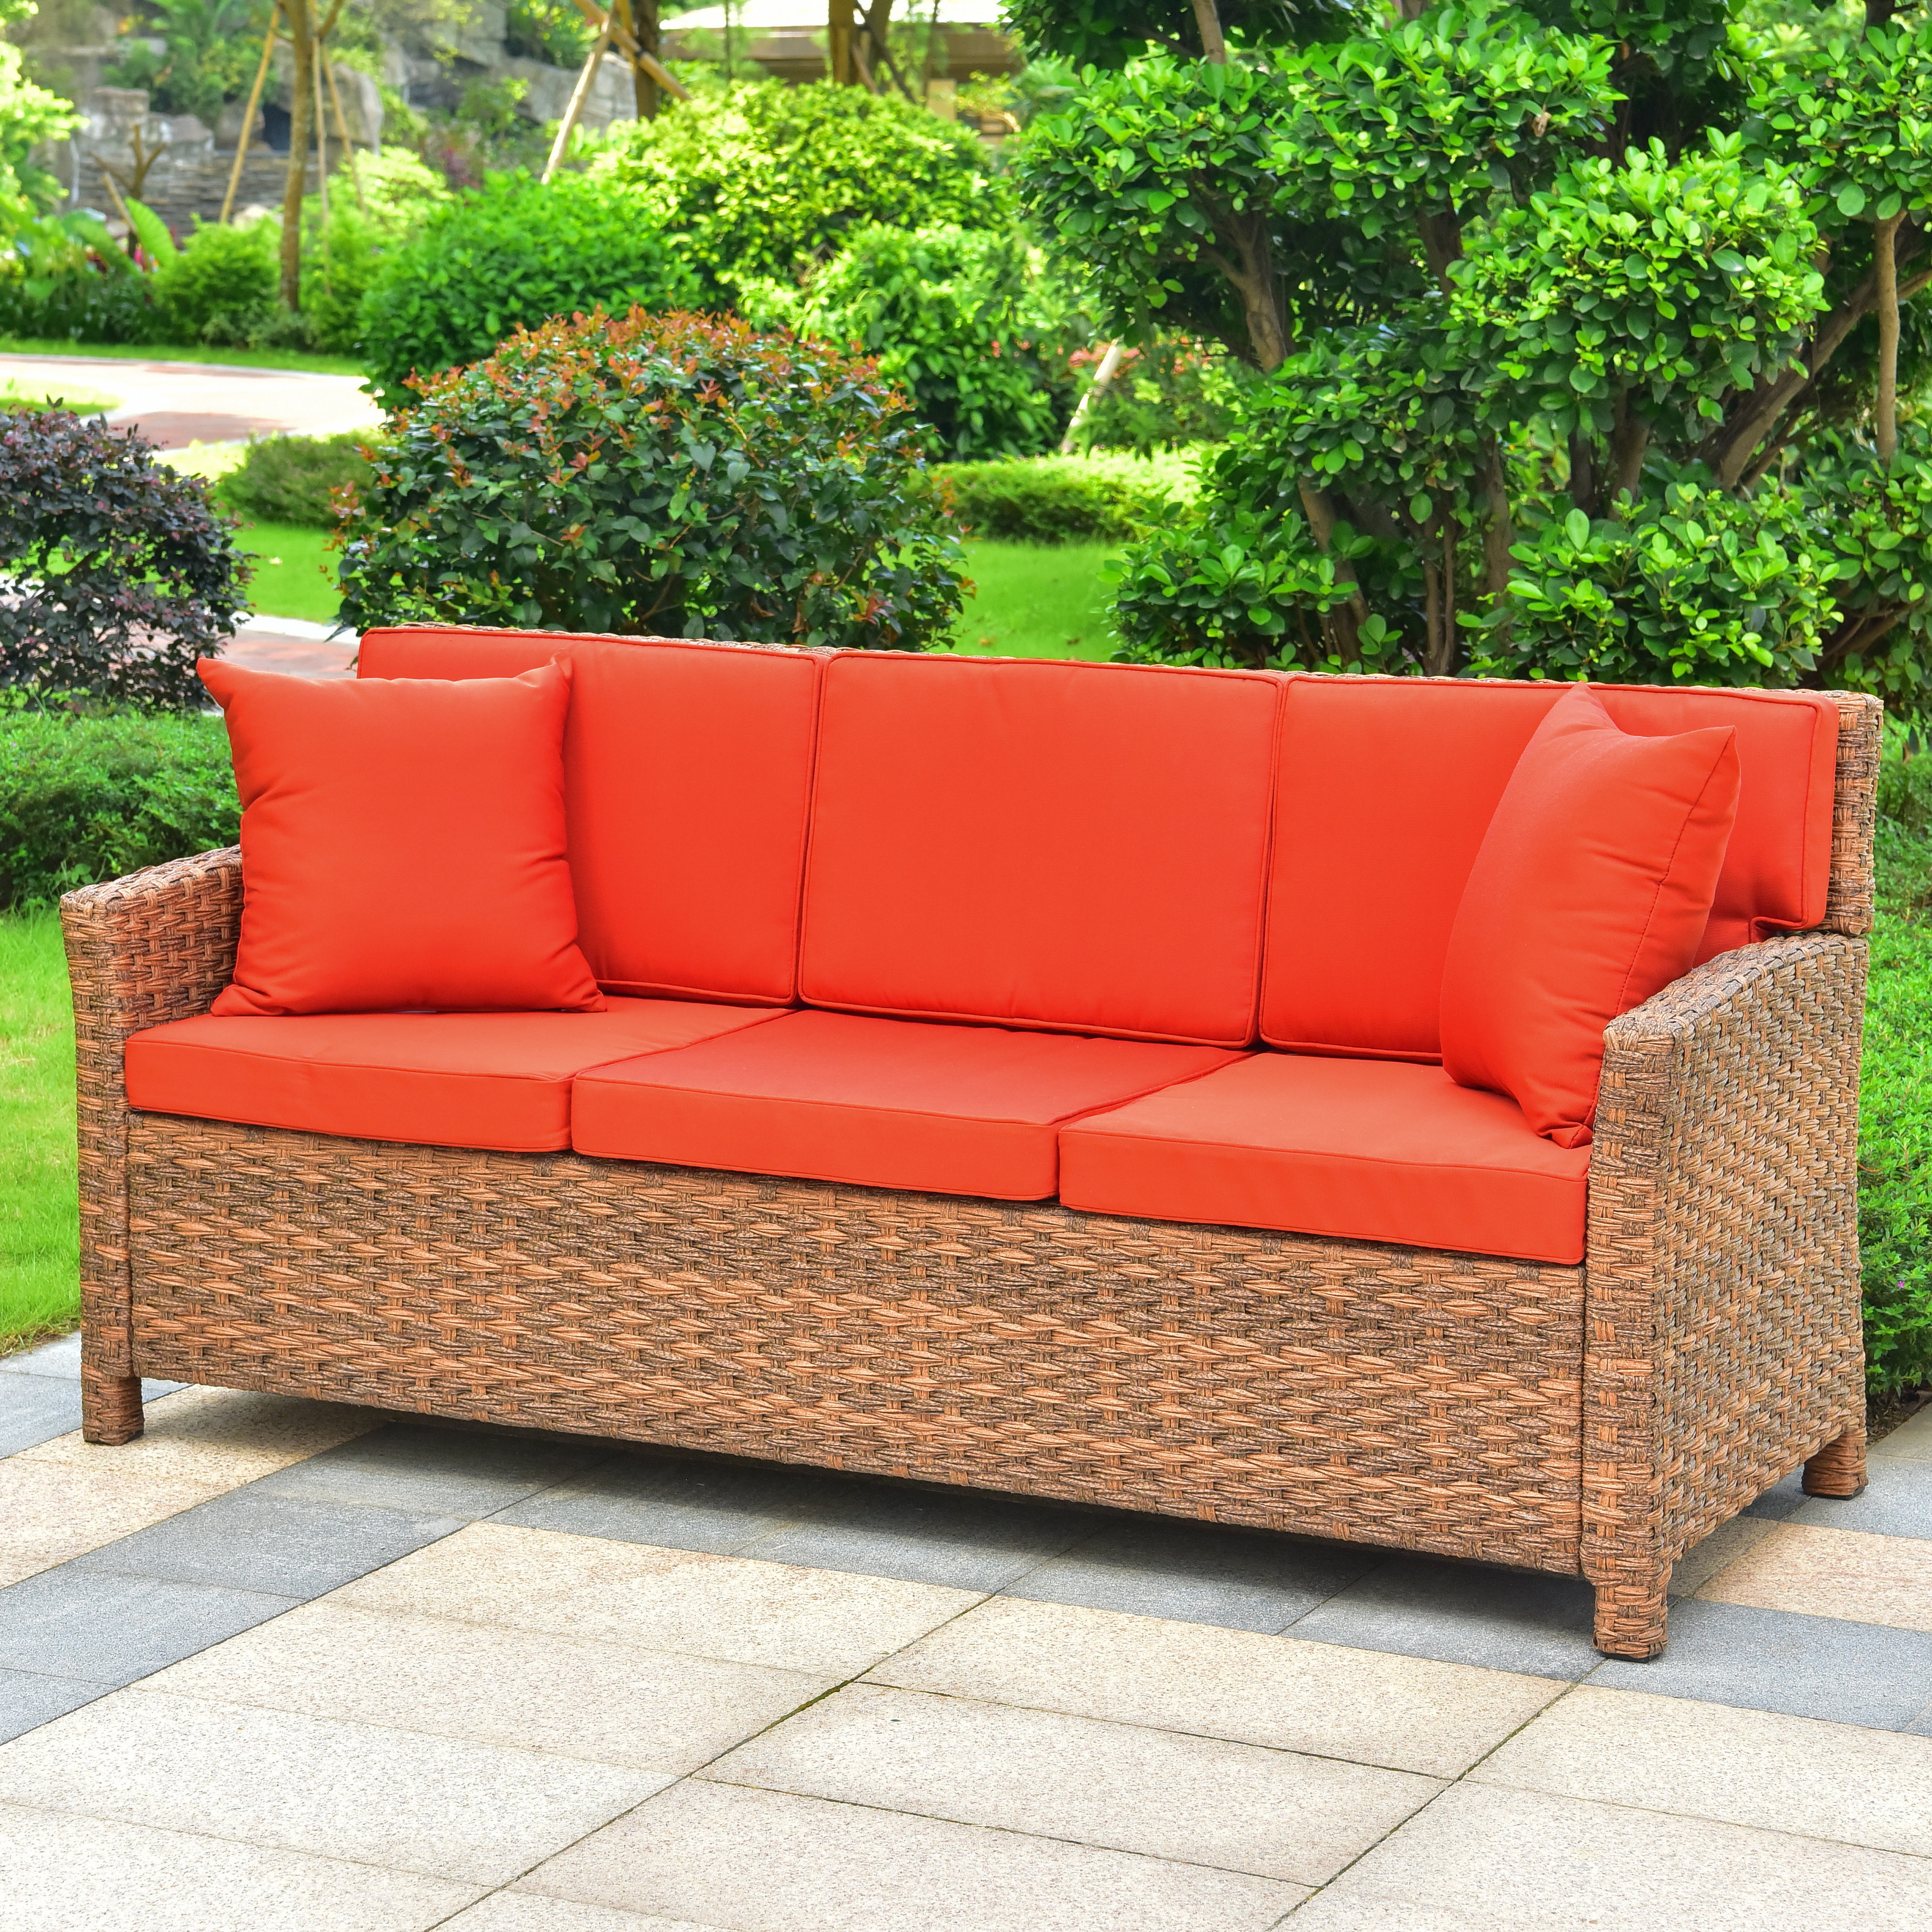 Well Liked Deanna Resin Wicker Patio Sofa With Cushions With Regard To Stapleton Wicker Resin Patio Sofas With Cushions (View 17 of 20)